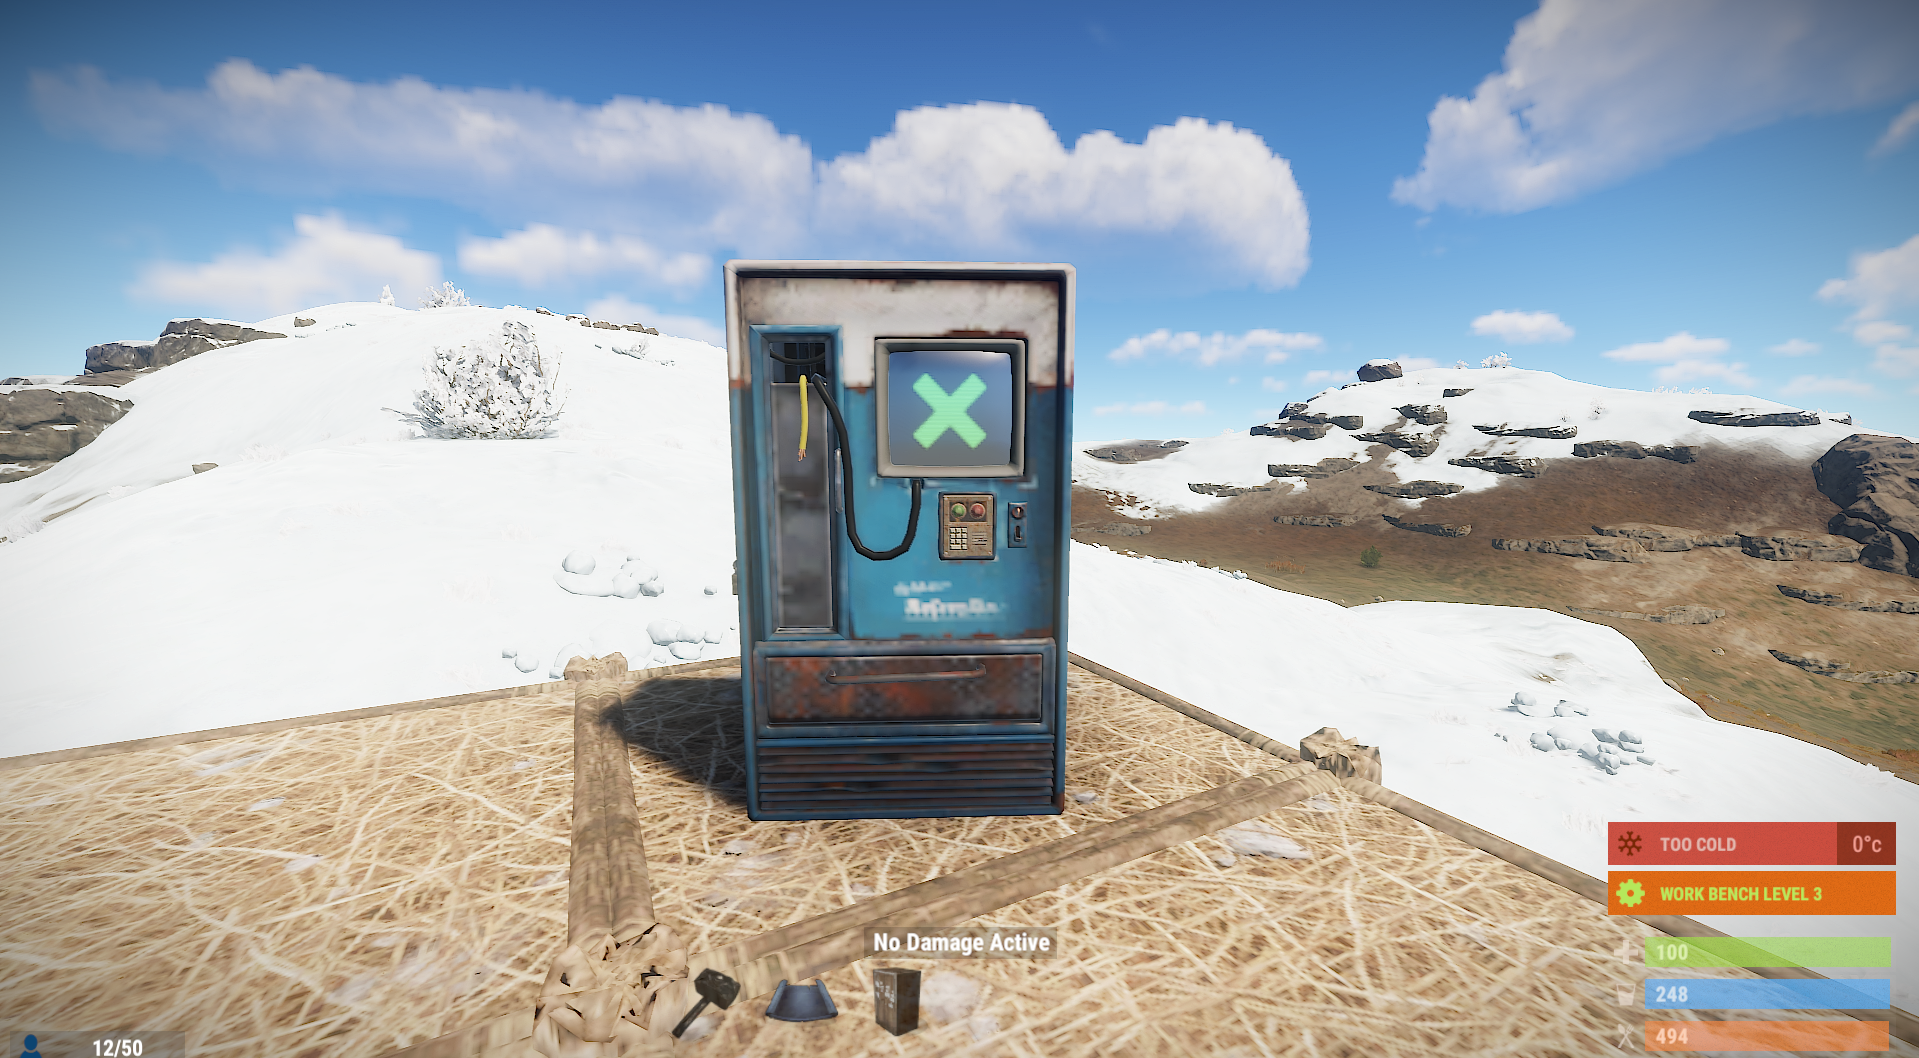 vending machine placed somewhere by itself